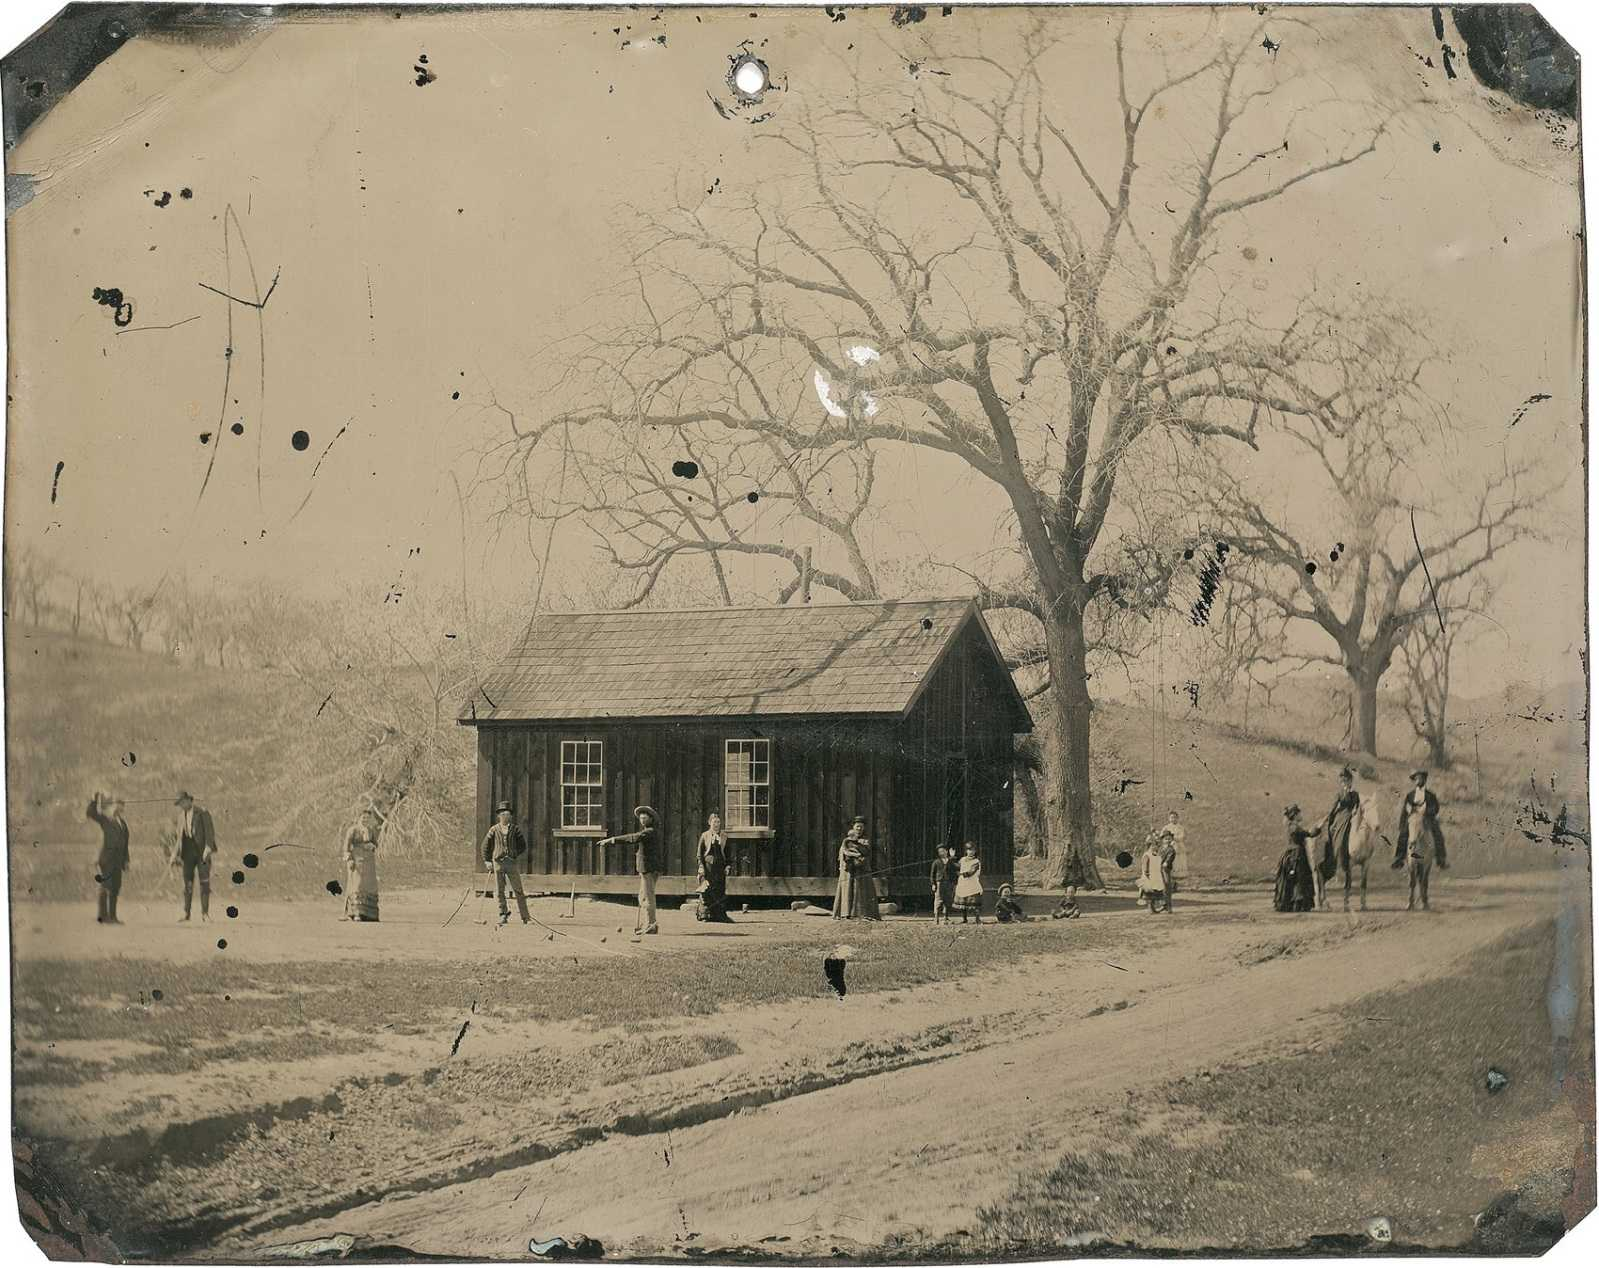 $2 Photo Of Billy The Kid Valued At $5 Million | Billy The Kid